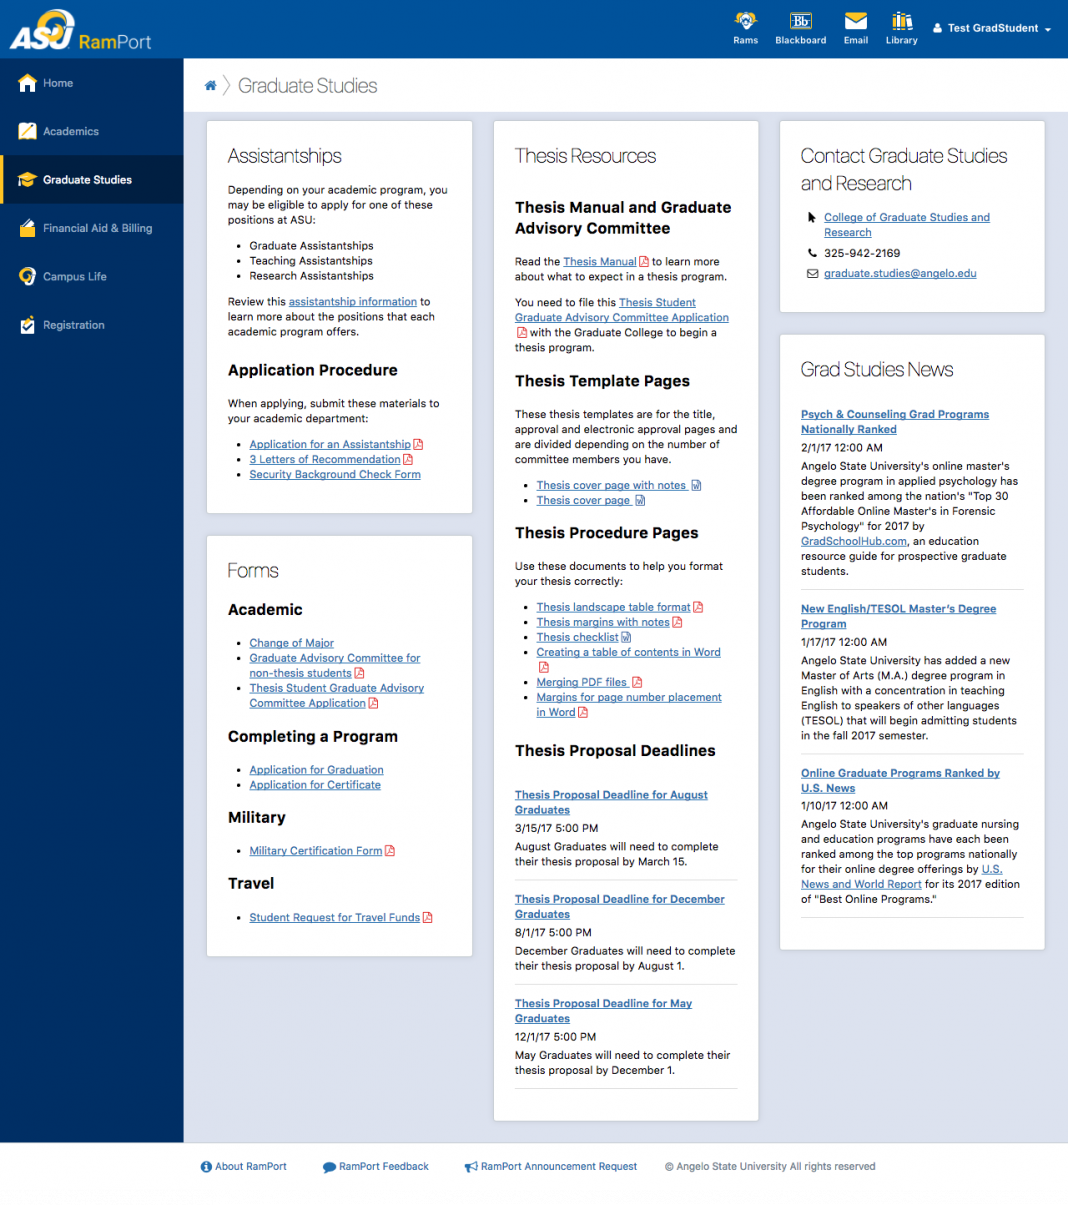 Screenshot of the Graduate Studies page in RamPort